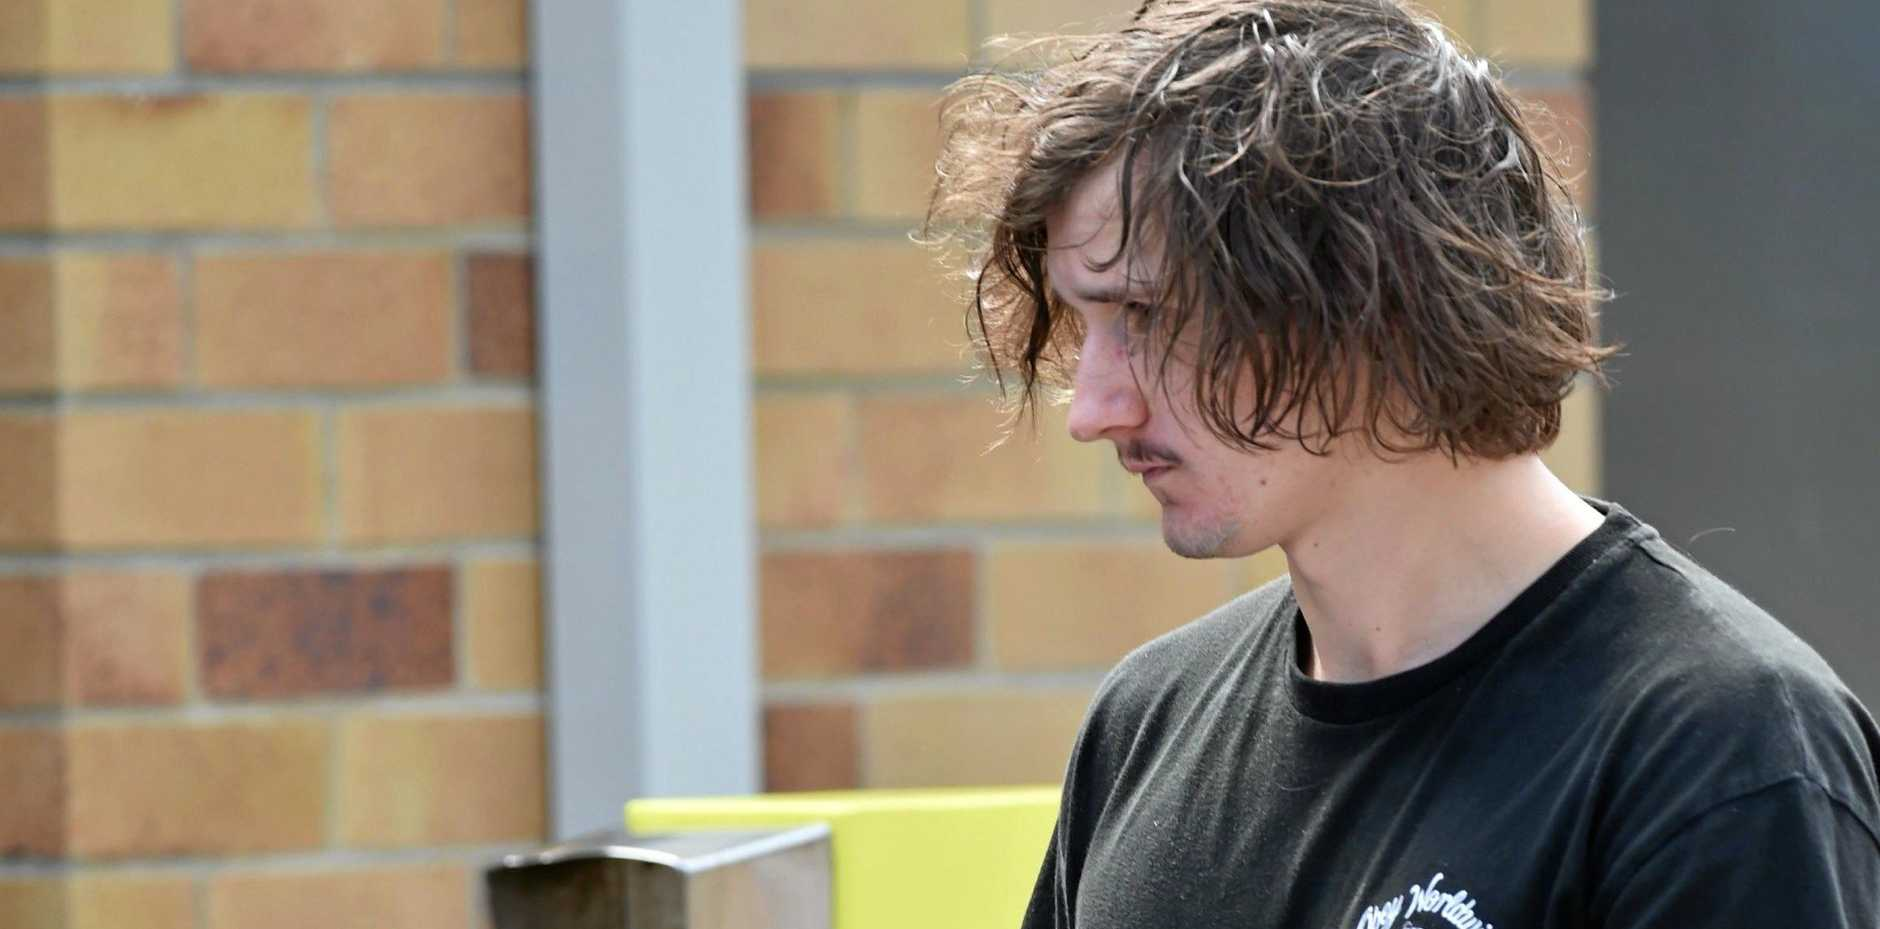 Tyler Robert Johns had charges downgraded after the Crown accepted he acted in self-defence.